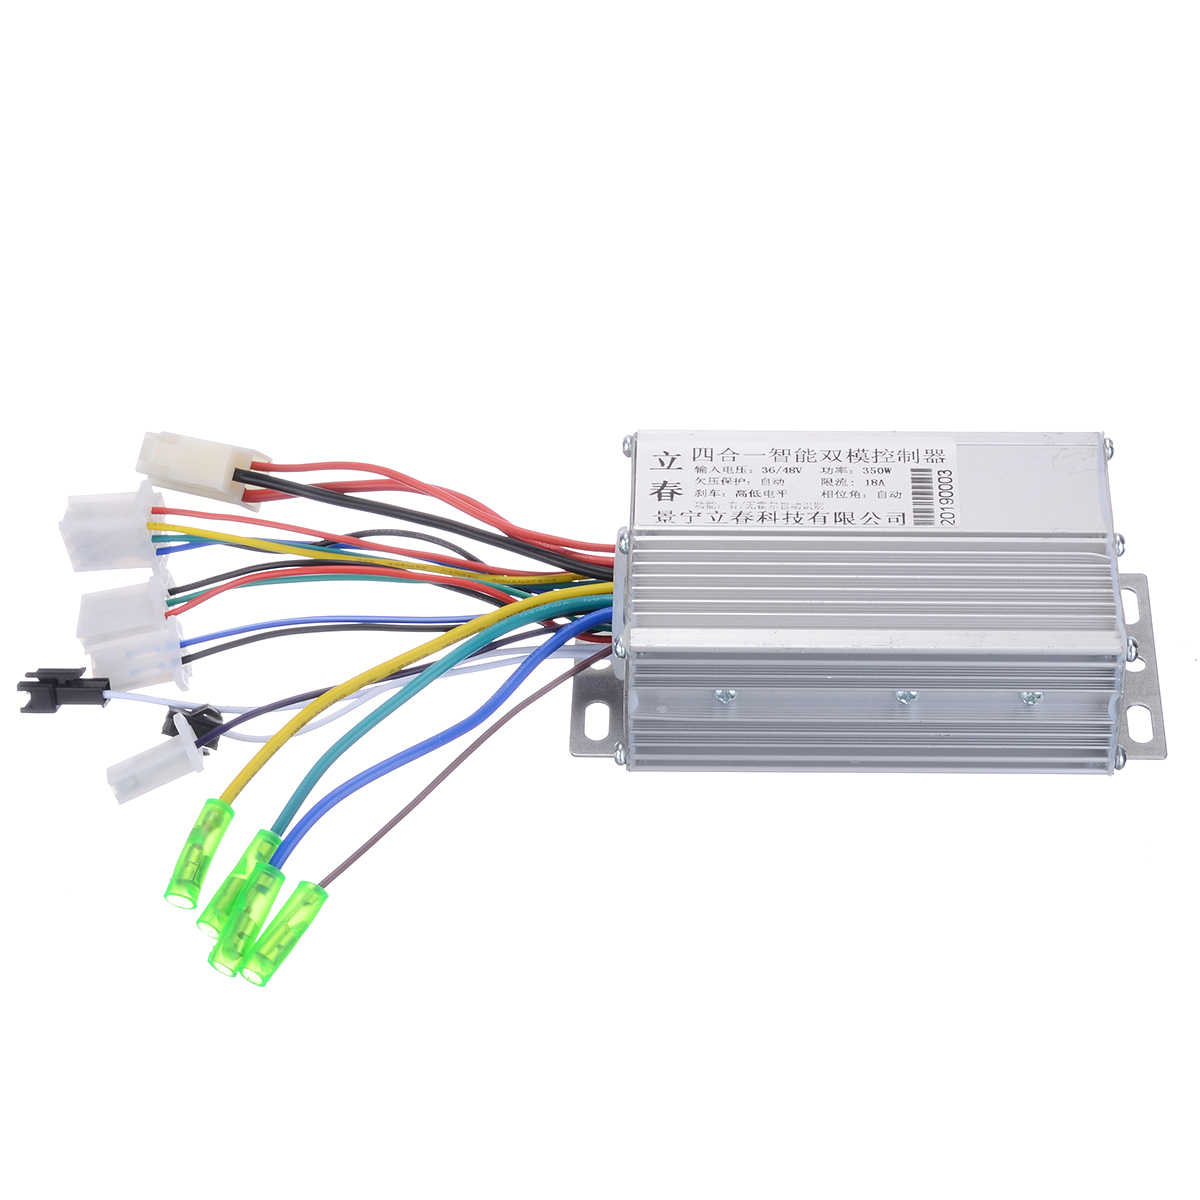 Durable 1Pcs DC 36V/48V 350W Brushless DC Motor Controller 103x70x35mm For Electric Bicycle E-bike Scooter